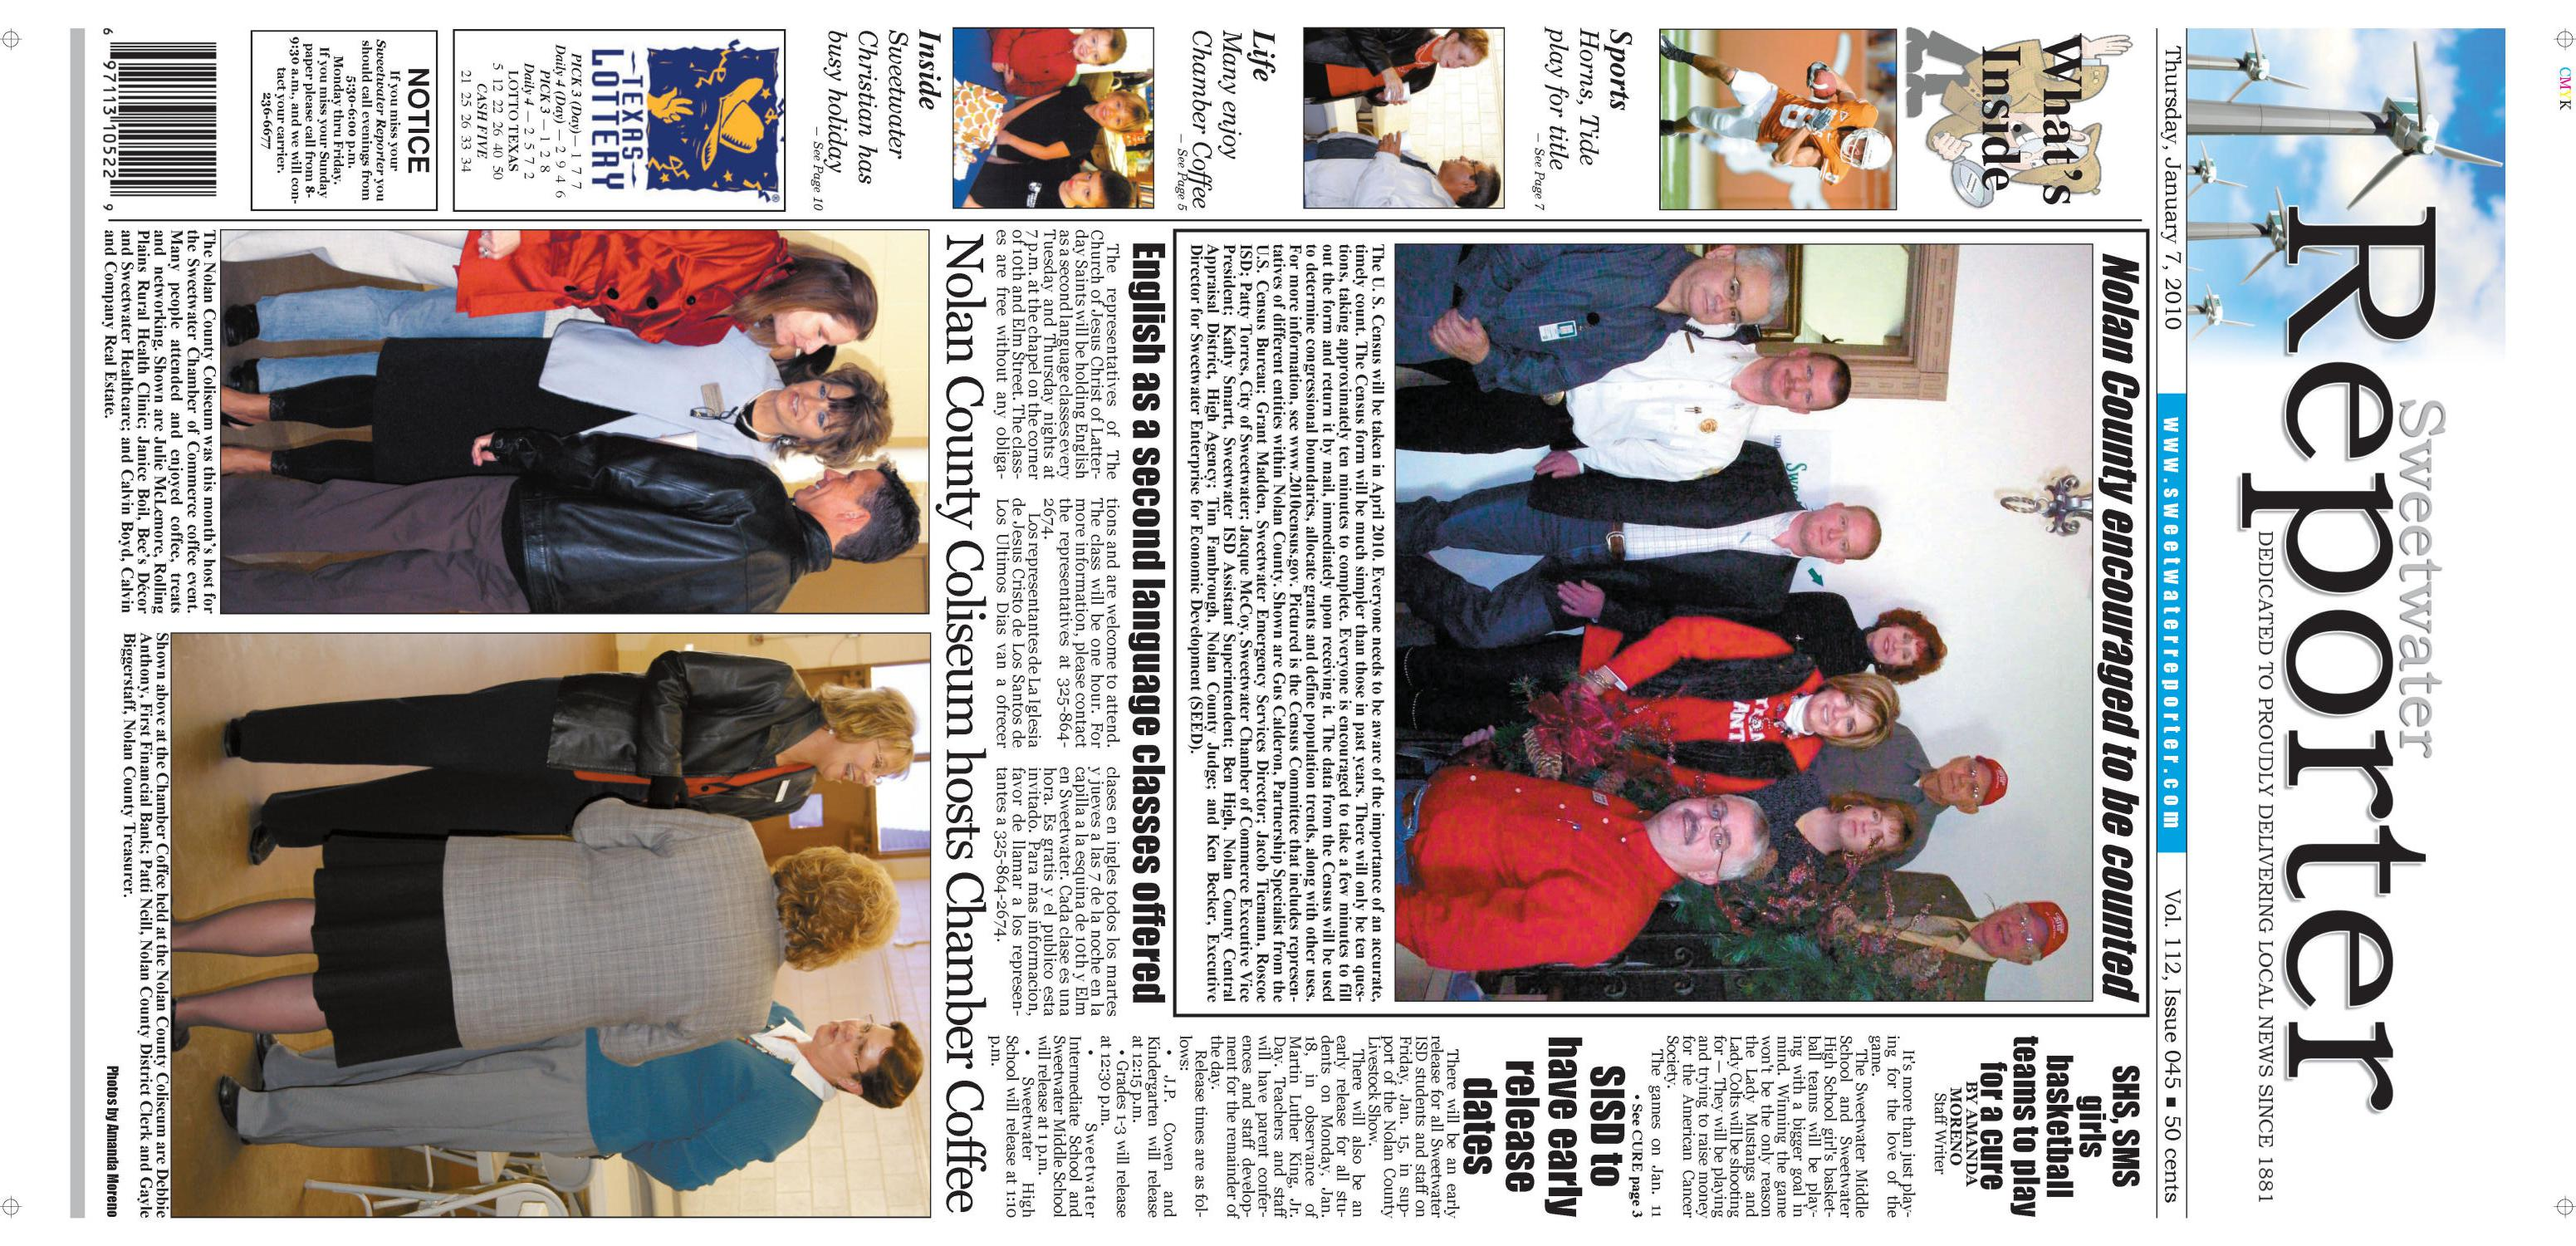 Sweetwater Reporter (Sweetwater, Tex.), Vol. 112, No. 045, Ed. 1 Thursday, January 7, 2010                                                                                                      [Sequence #]: 1 of 10